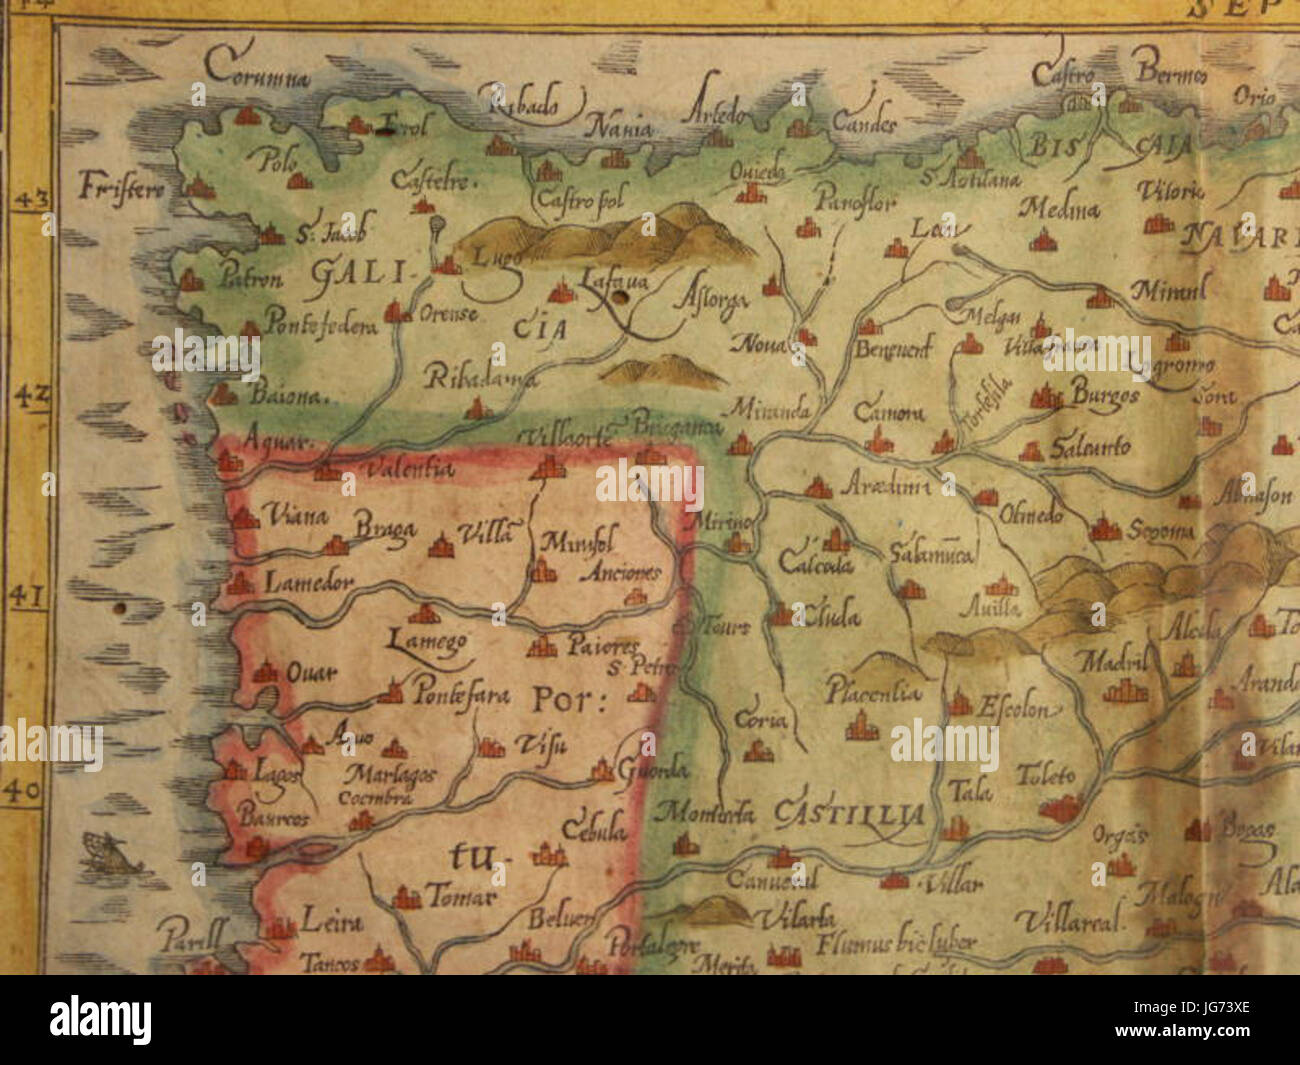 Map Of Spain And Portugal North West Stock Photo Royalty - Portugal map north